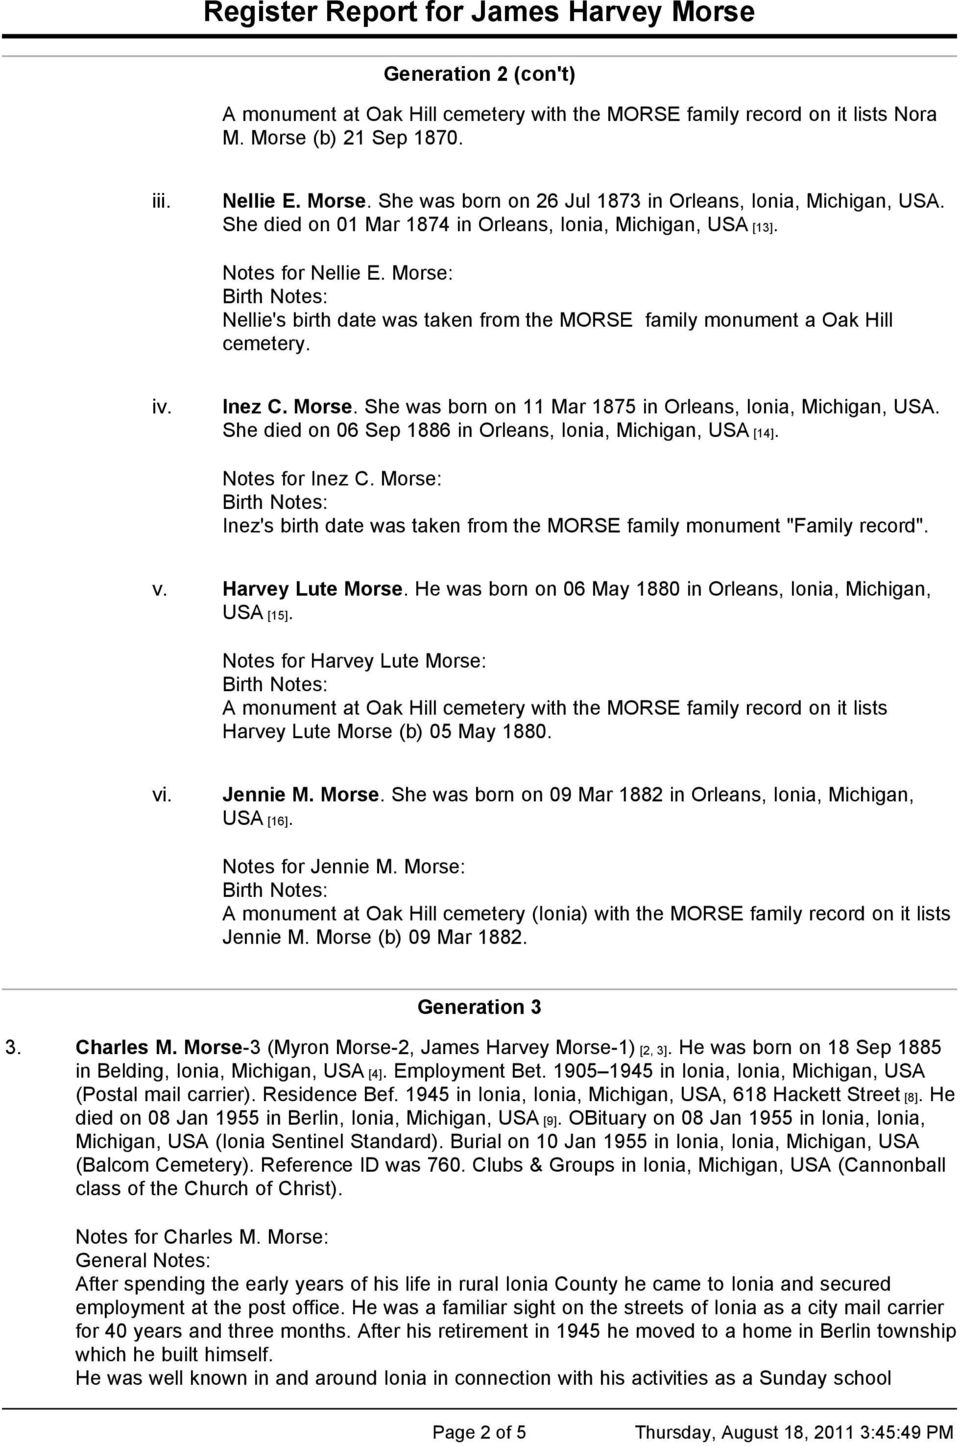 "She died on 06 Sep 1886 in Orleans, Ionia, Michigan, USA [14]. Notes for Inez C. Morse: Inez's birth date was taken from the MORSE family monument ""Family record"". v. Harvey Lute Morse."